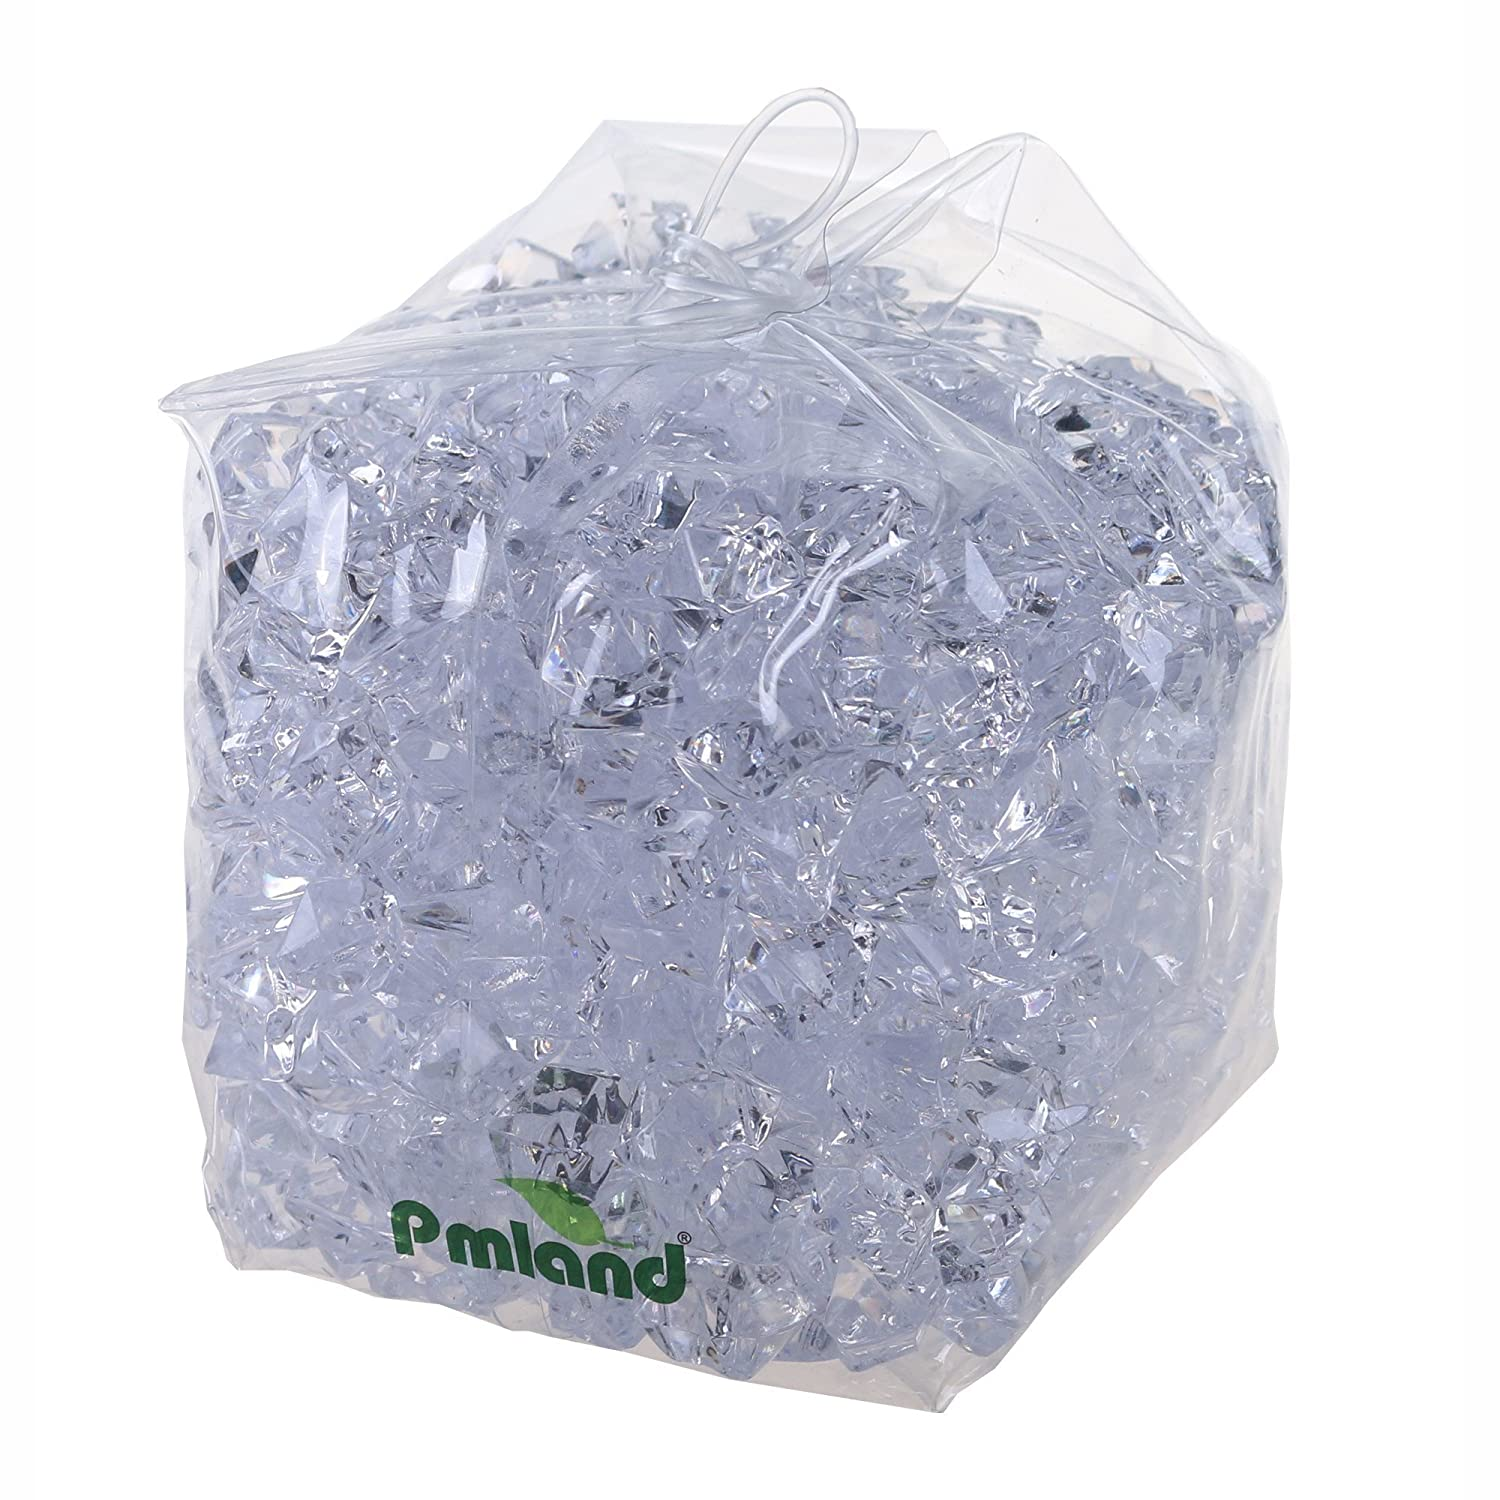 PMLAND Acrylic Ice Rock Cubes 3 Lbs Bag, Vase Filler or Table Decorating Idea- Clear